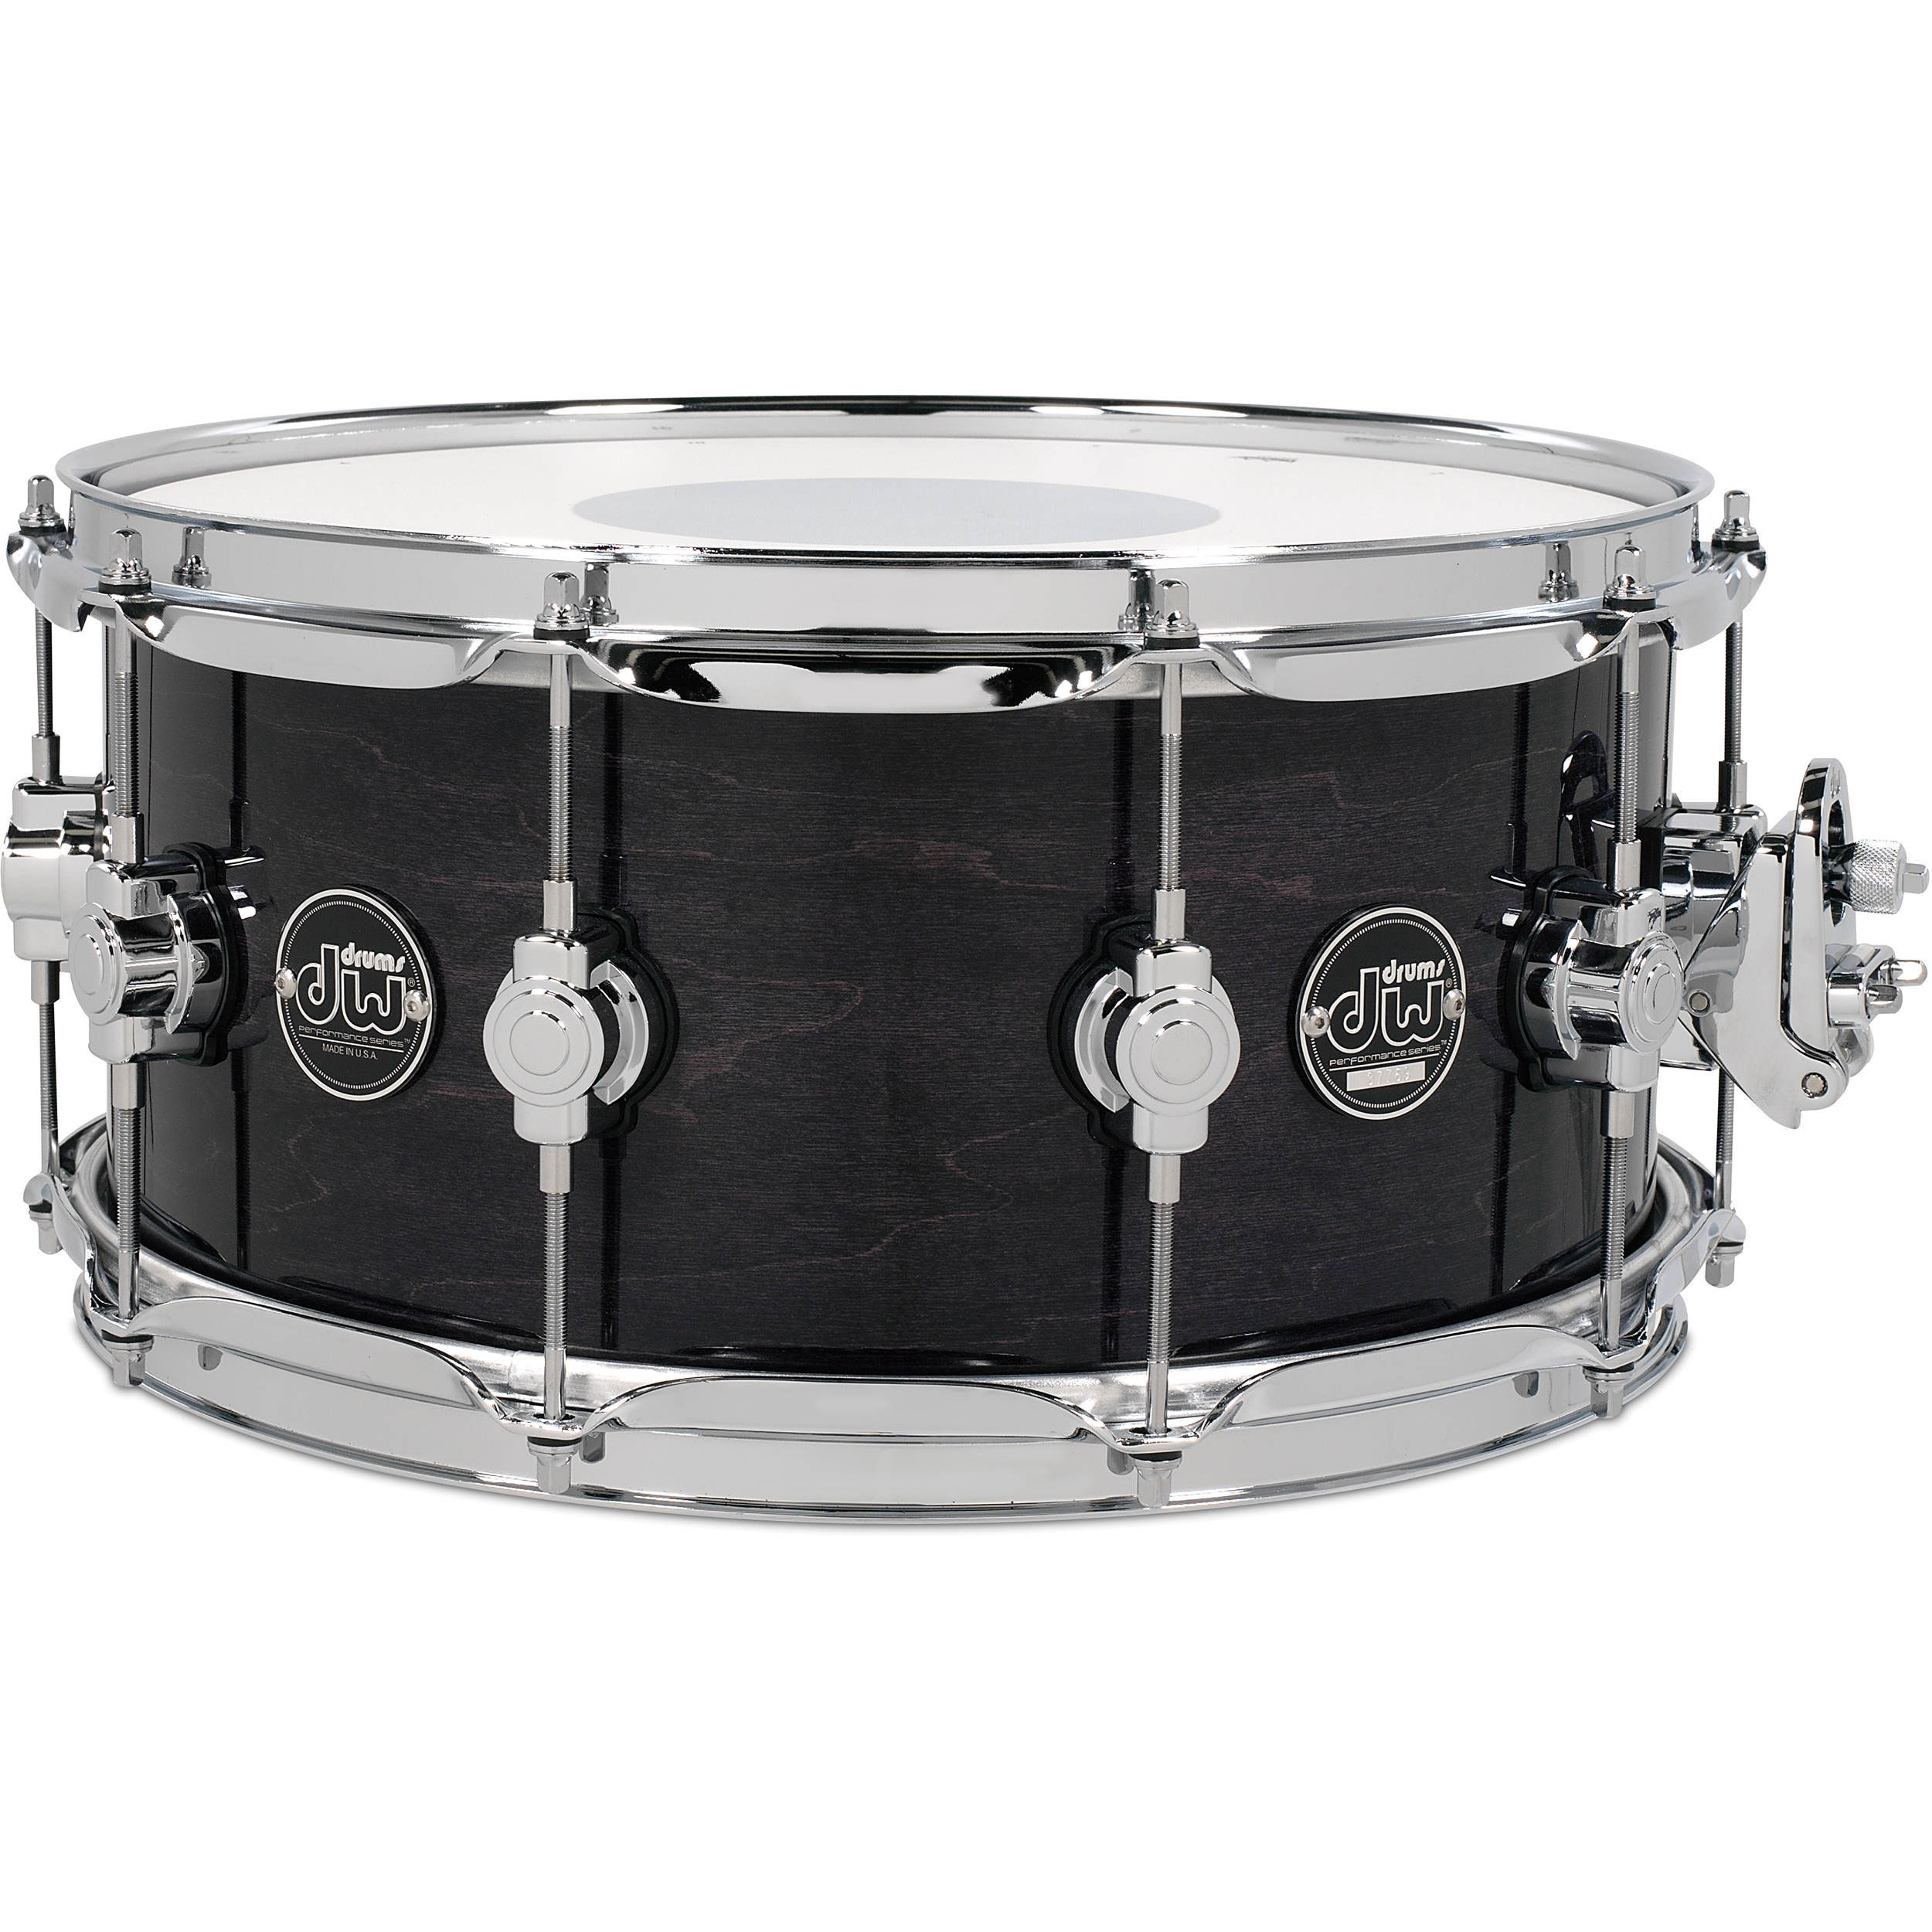 """DW 6.5"""" x 14"""" Performance Series Snare Drum in Specialty Lacquer Finish"""